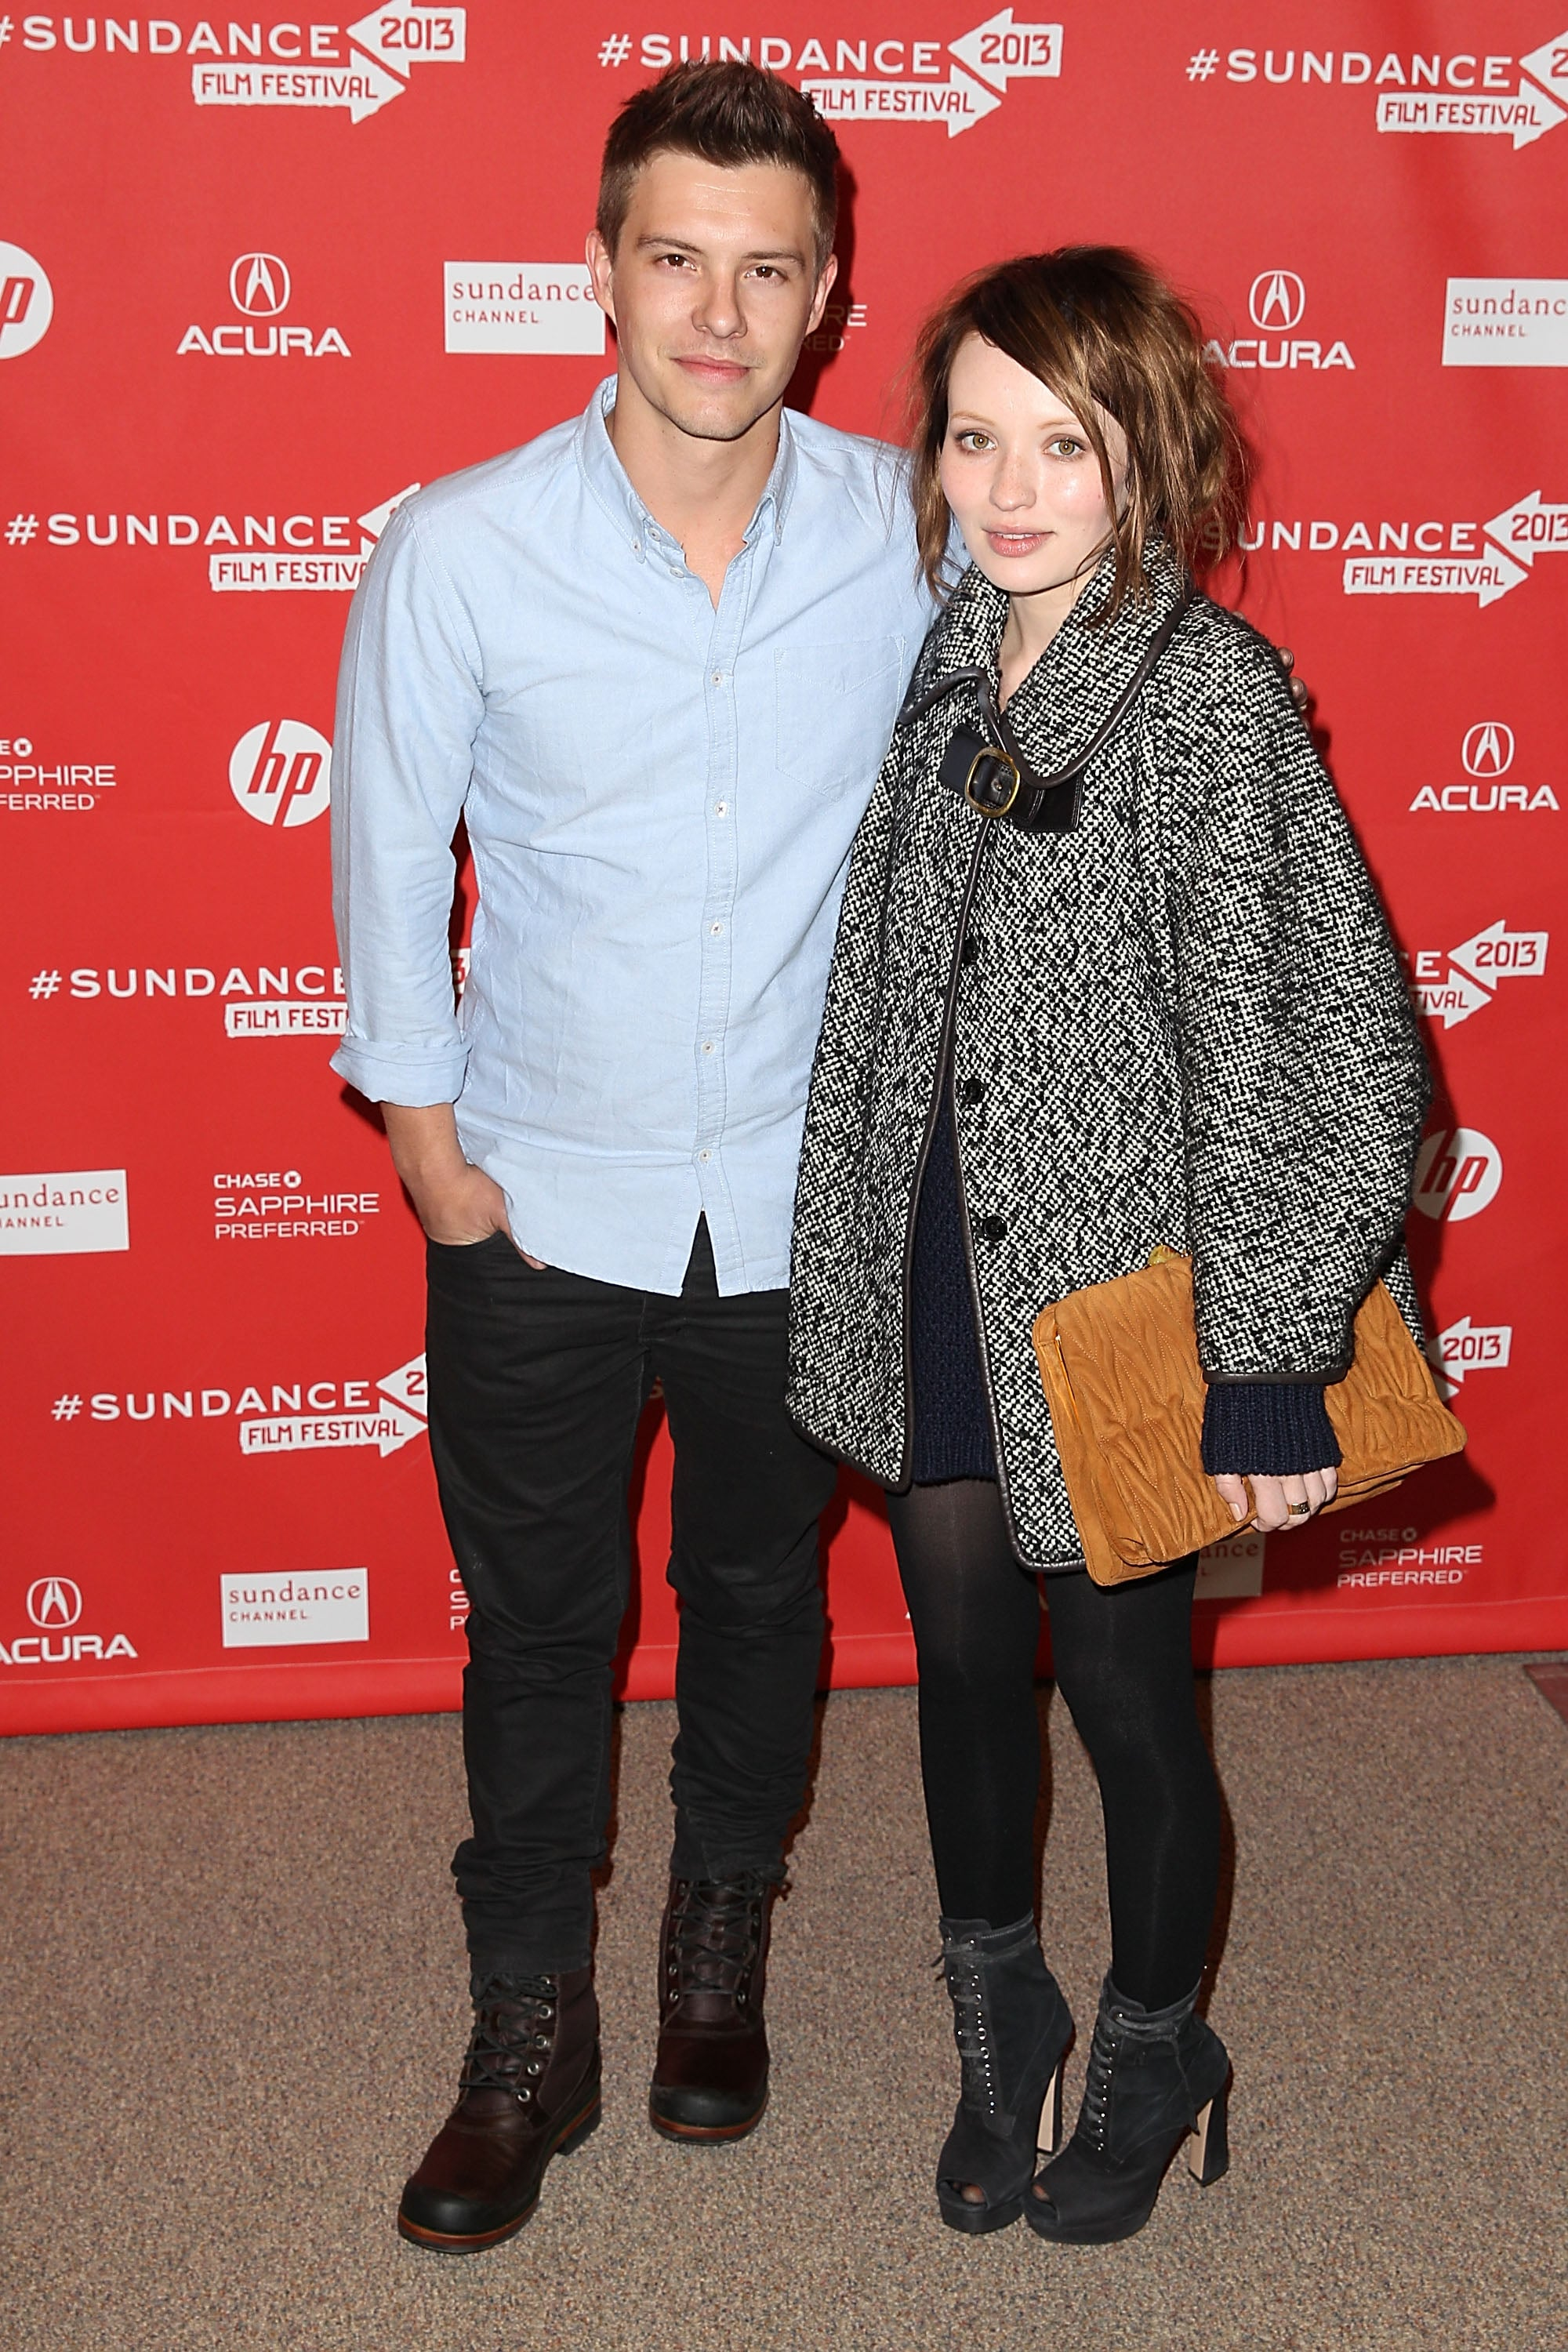 Emily Browning and xavier samuel